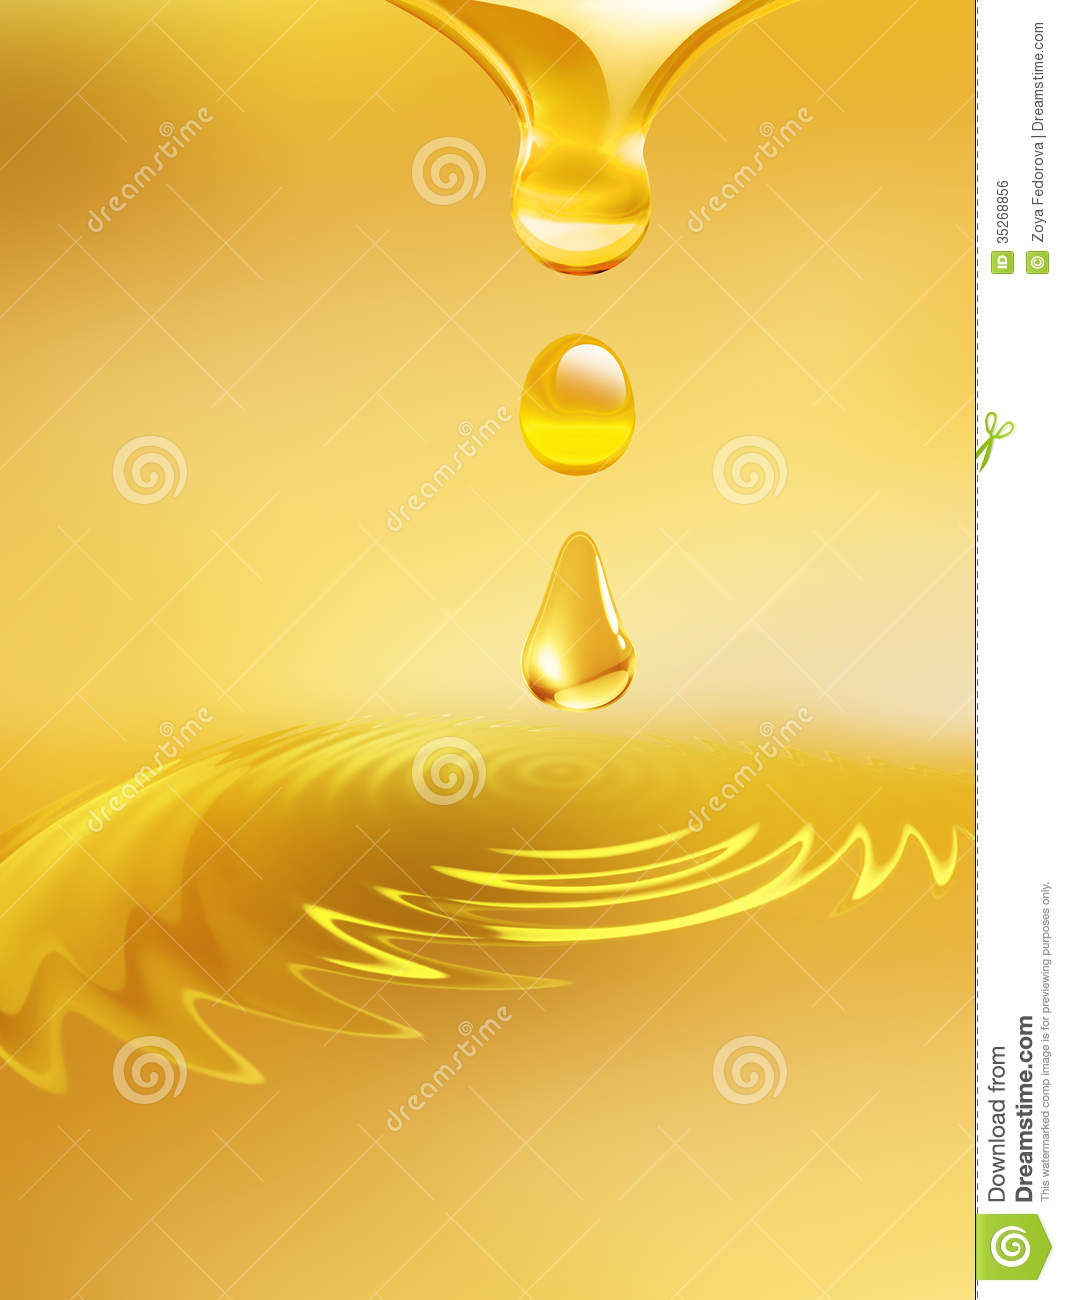 Dripping Oil Royalty Free Stock Image - Image: 35268856